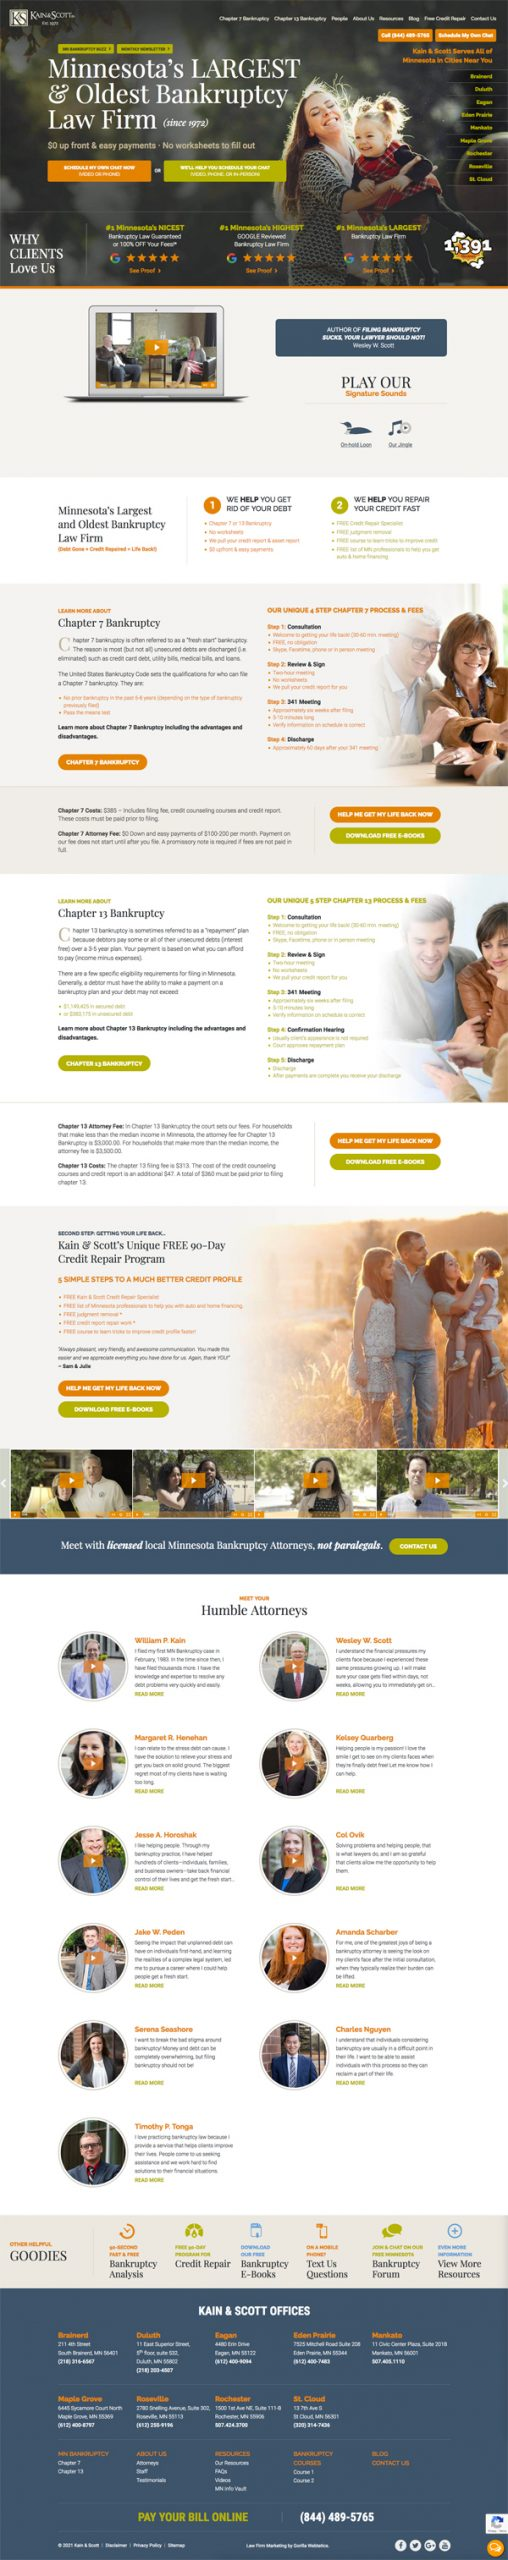 Kain Scott Scaled